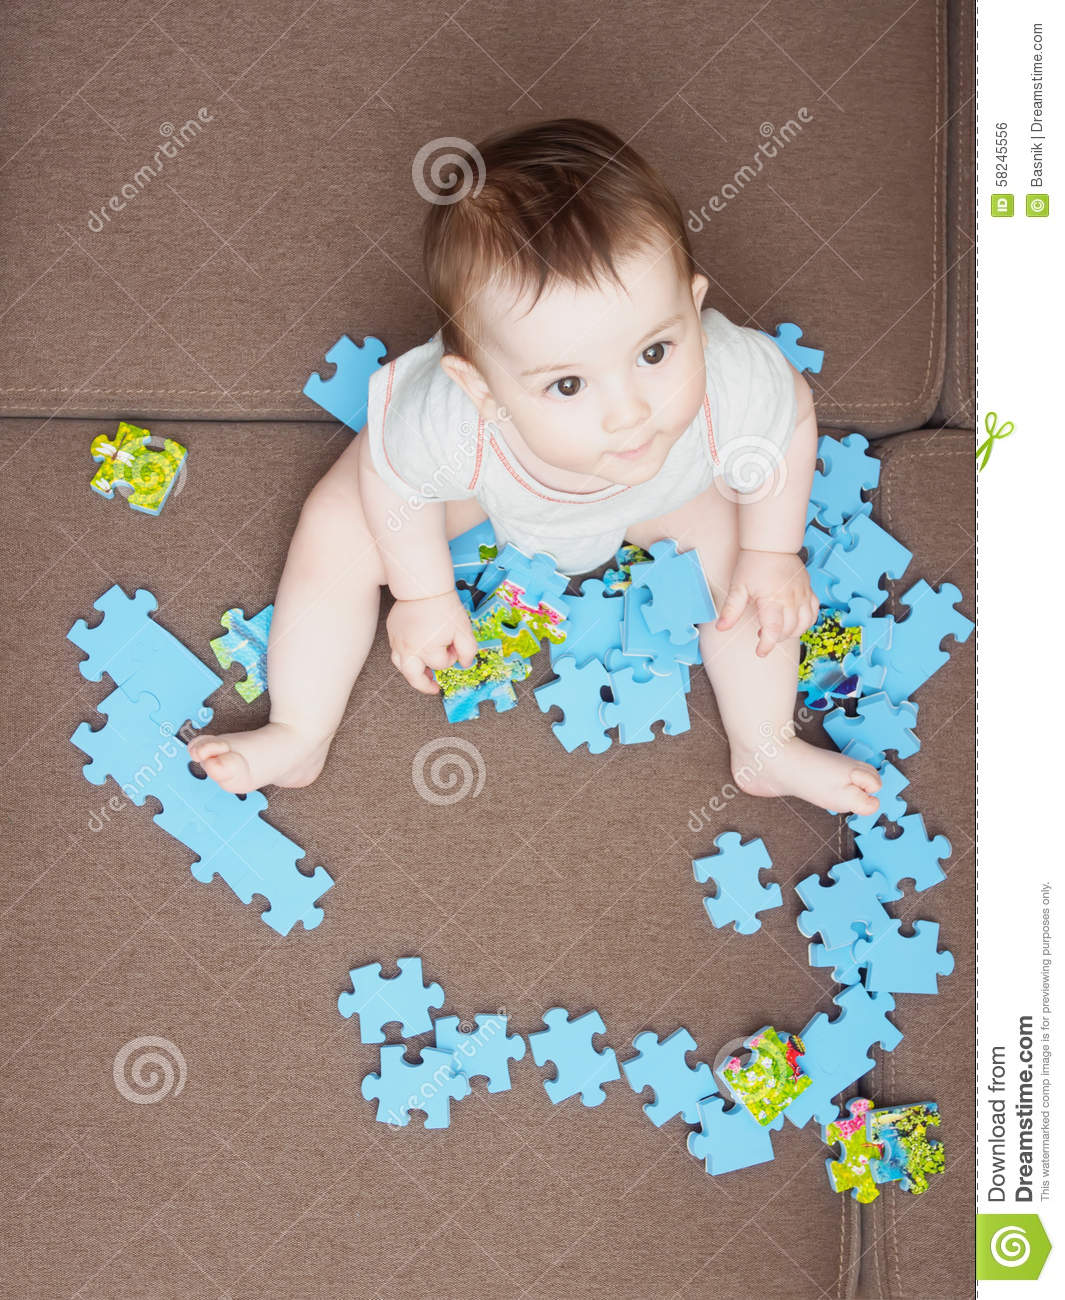 Baby Boy Playing With Puzzle Pieces On Sofa In The Living Room At Home Stock Photo Image 58245556